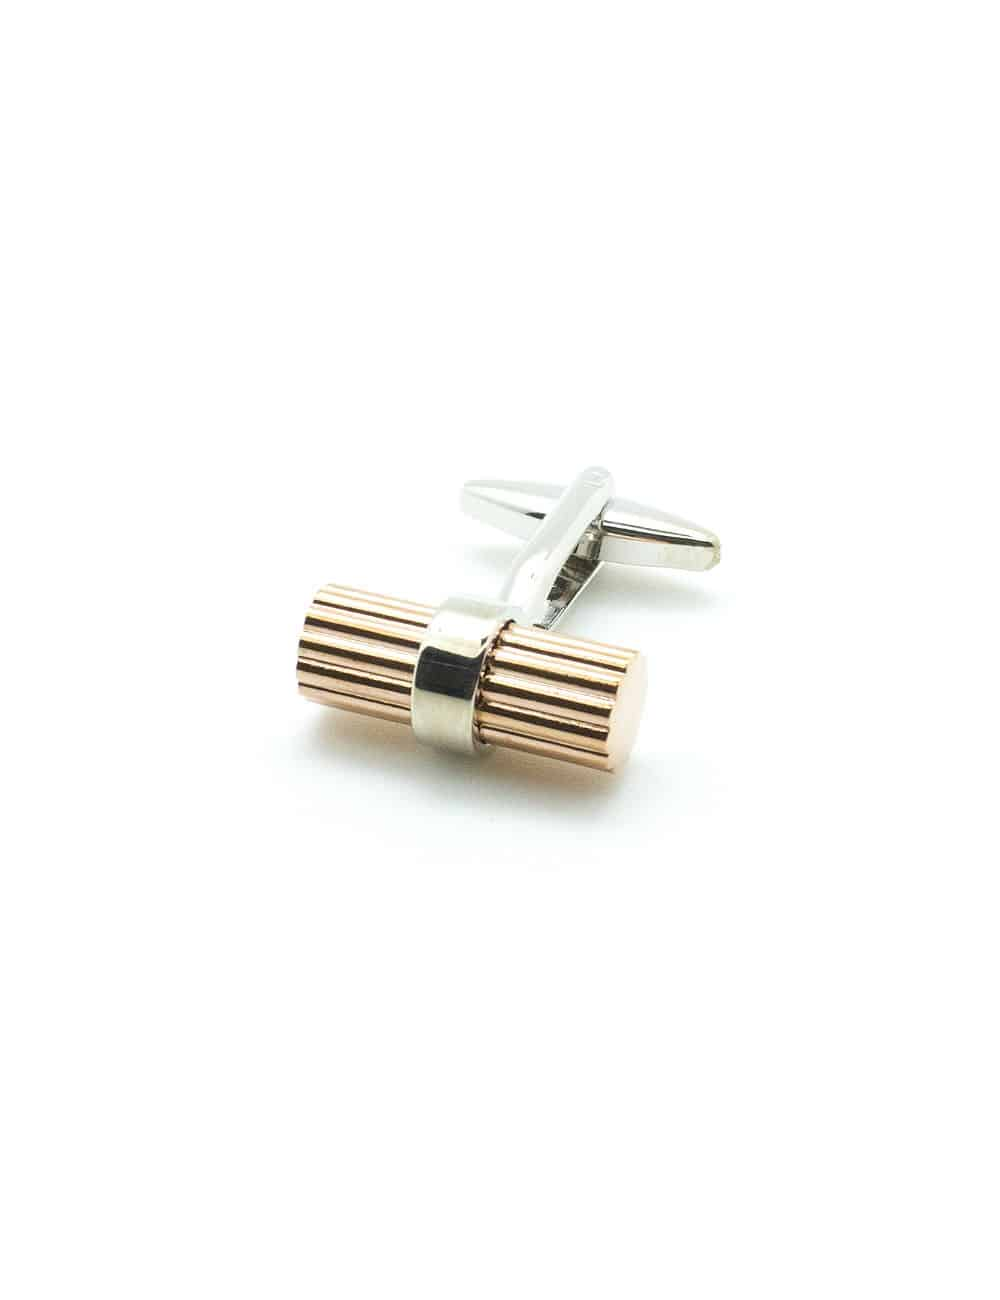 Classic Rose Gold Line Cylinder with Silver Centre Circle Cufflink C101FC-081A